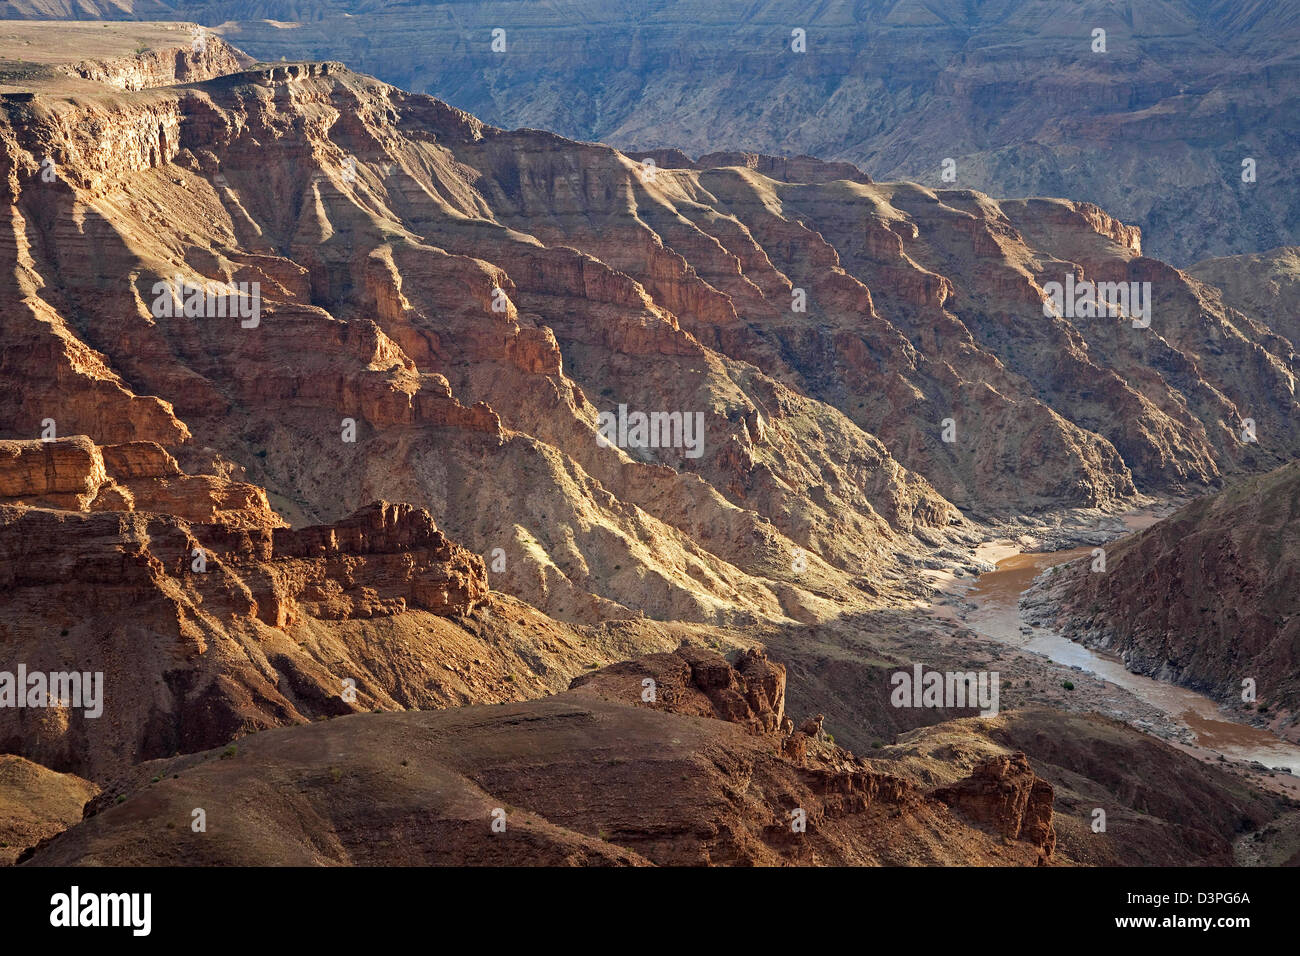 Fish River Canyon, second largest canyon in the world, Namibia, South Africa - Stock Image